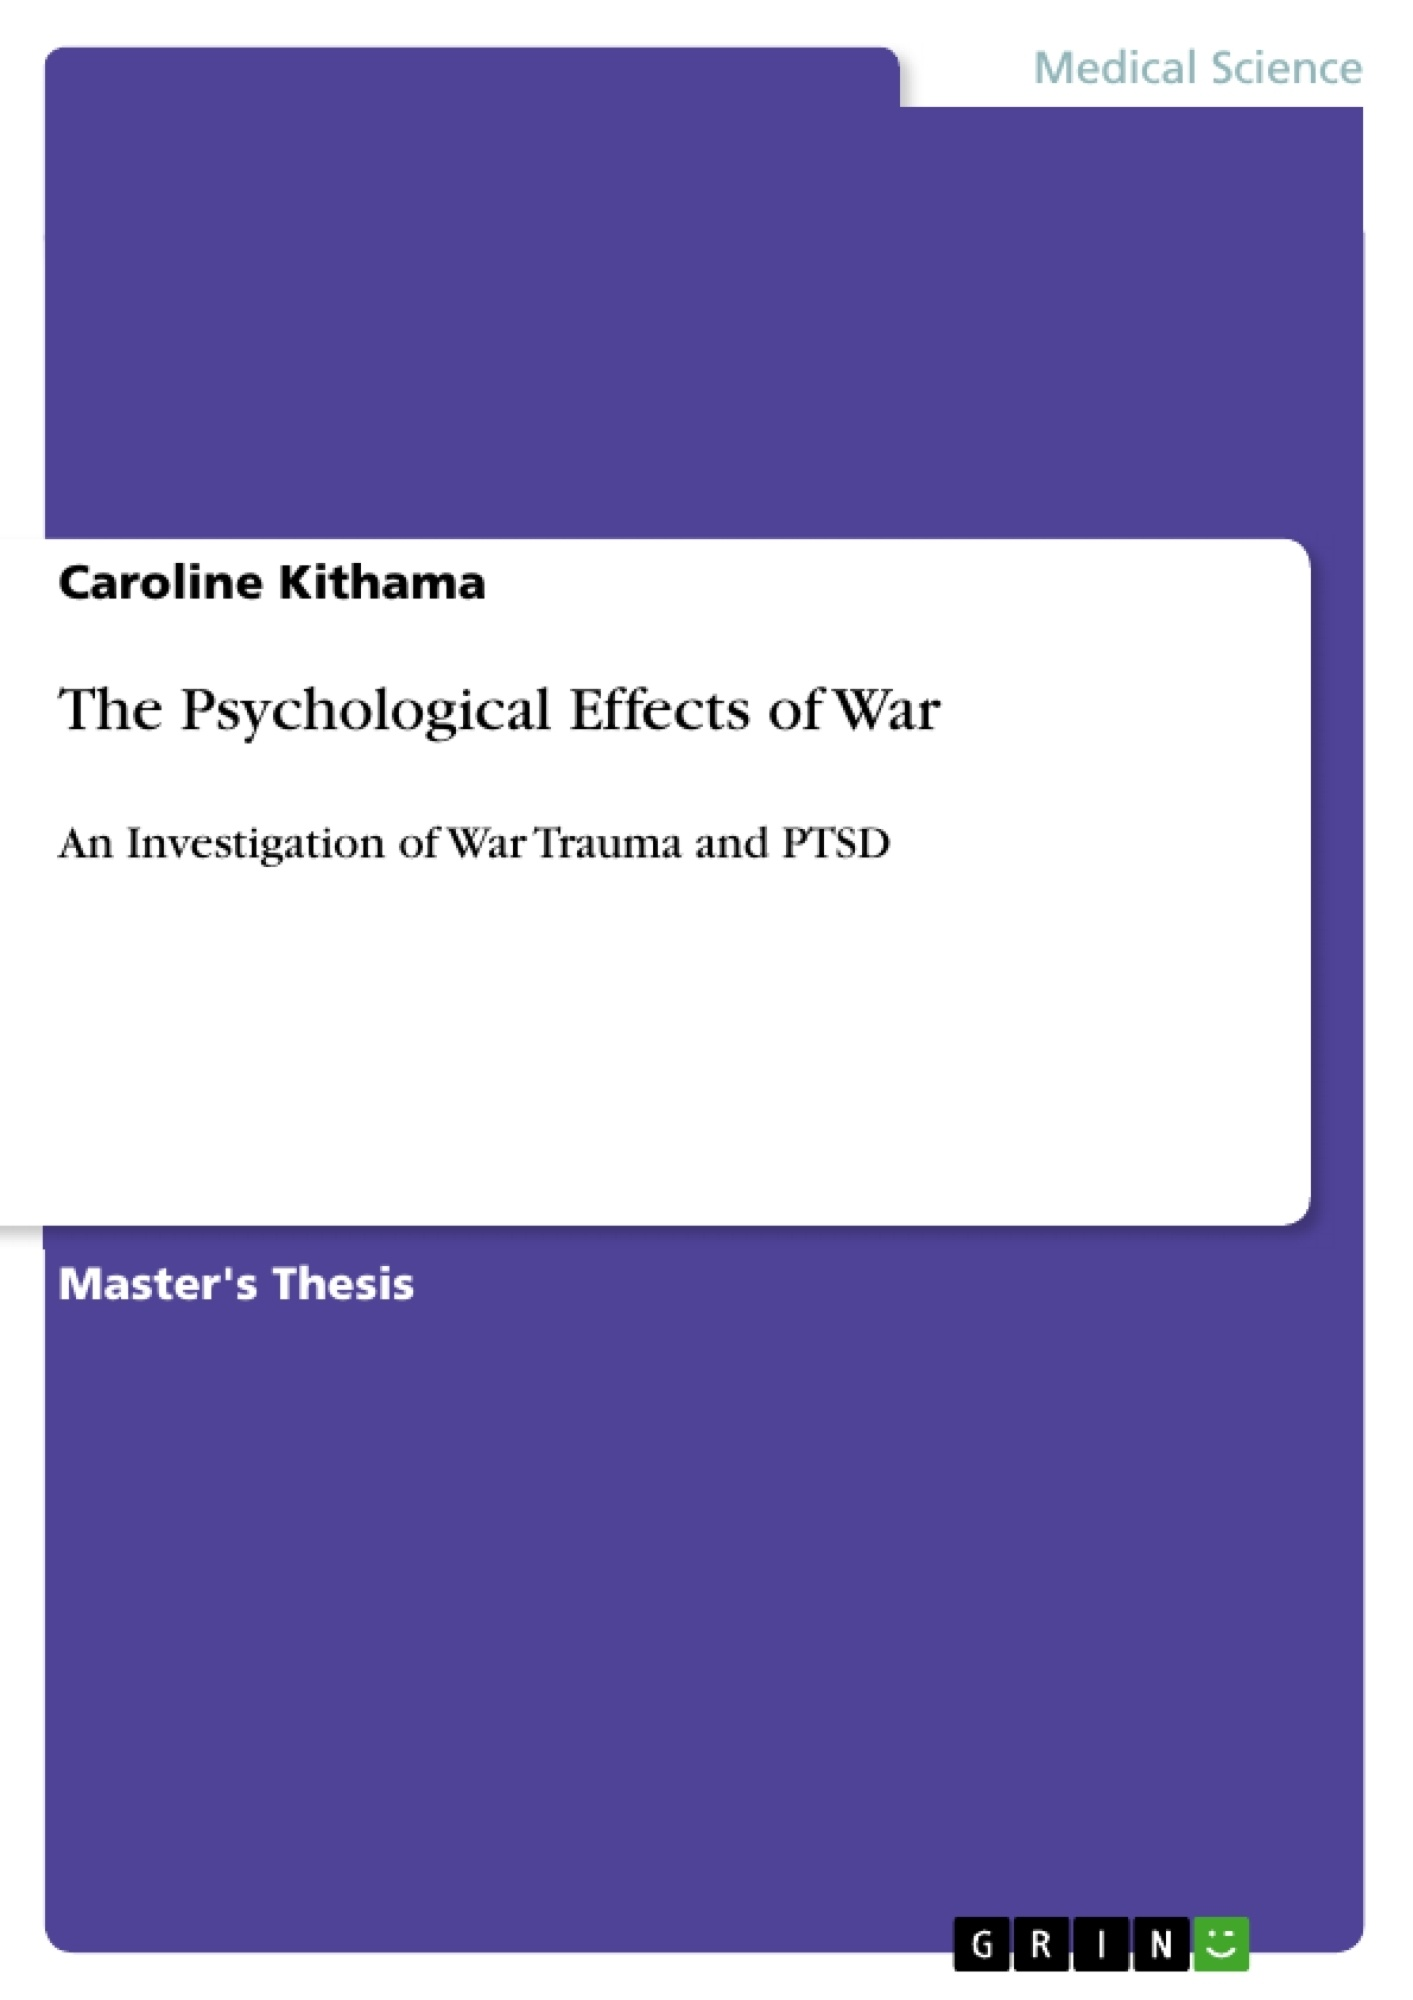 The Science Of Trauma And Its Effects >> The Psychological Effects Of War Publish Your Master S Thesis